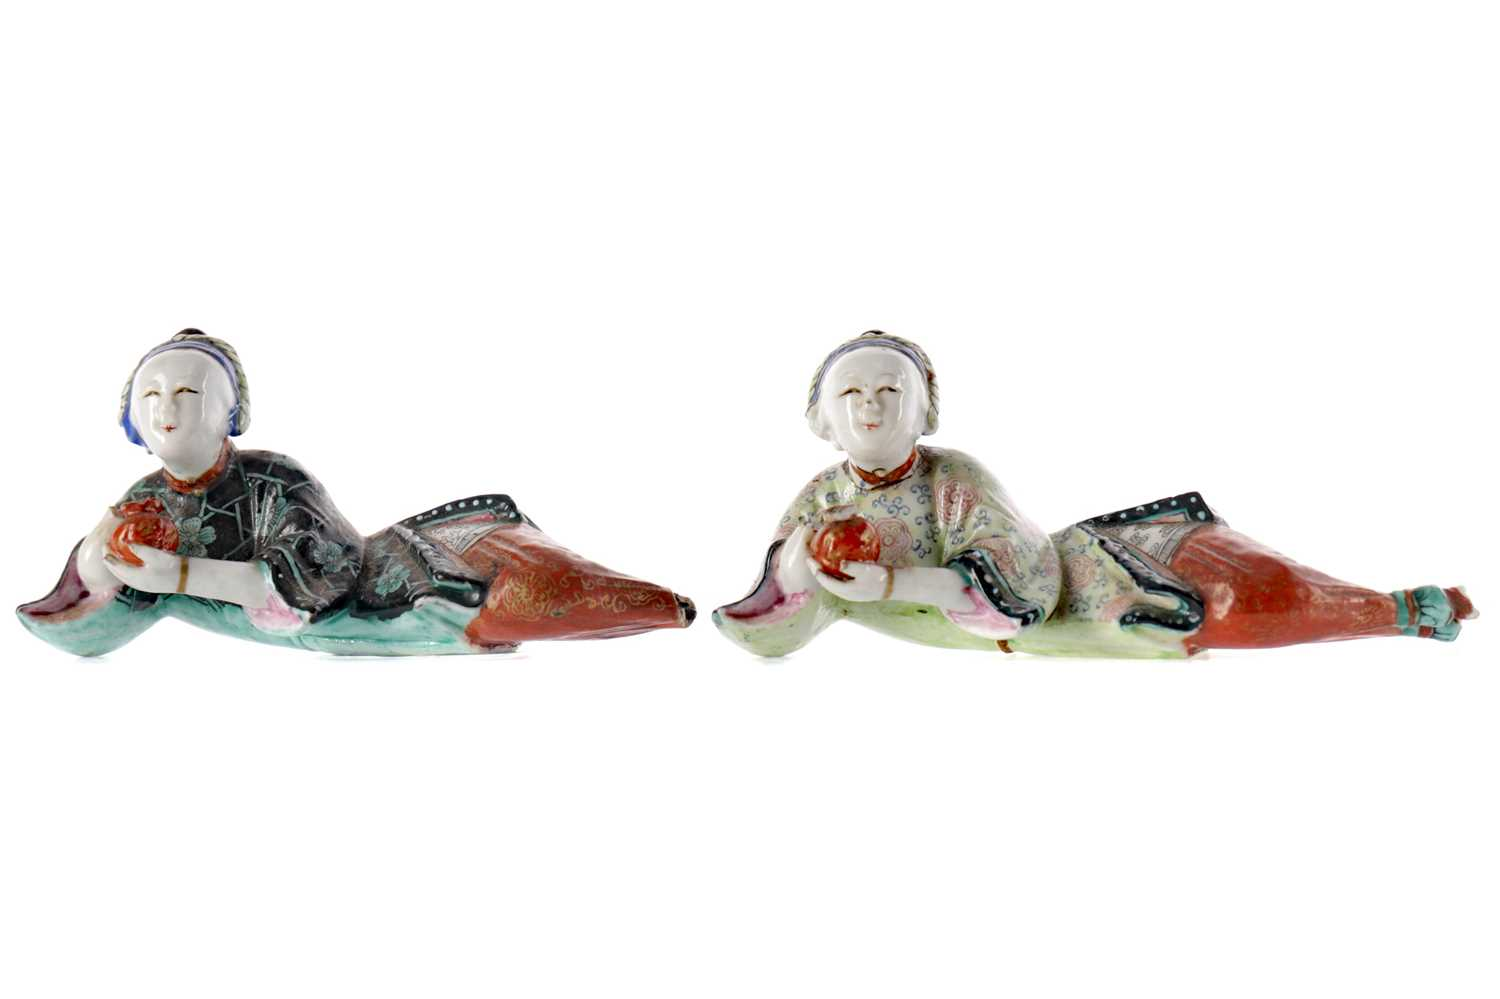 Lot 757 - A LOT OF TWO EARLY 20TH CENTURY CHINESE CERAMIC FIGURES